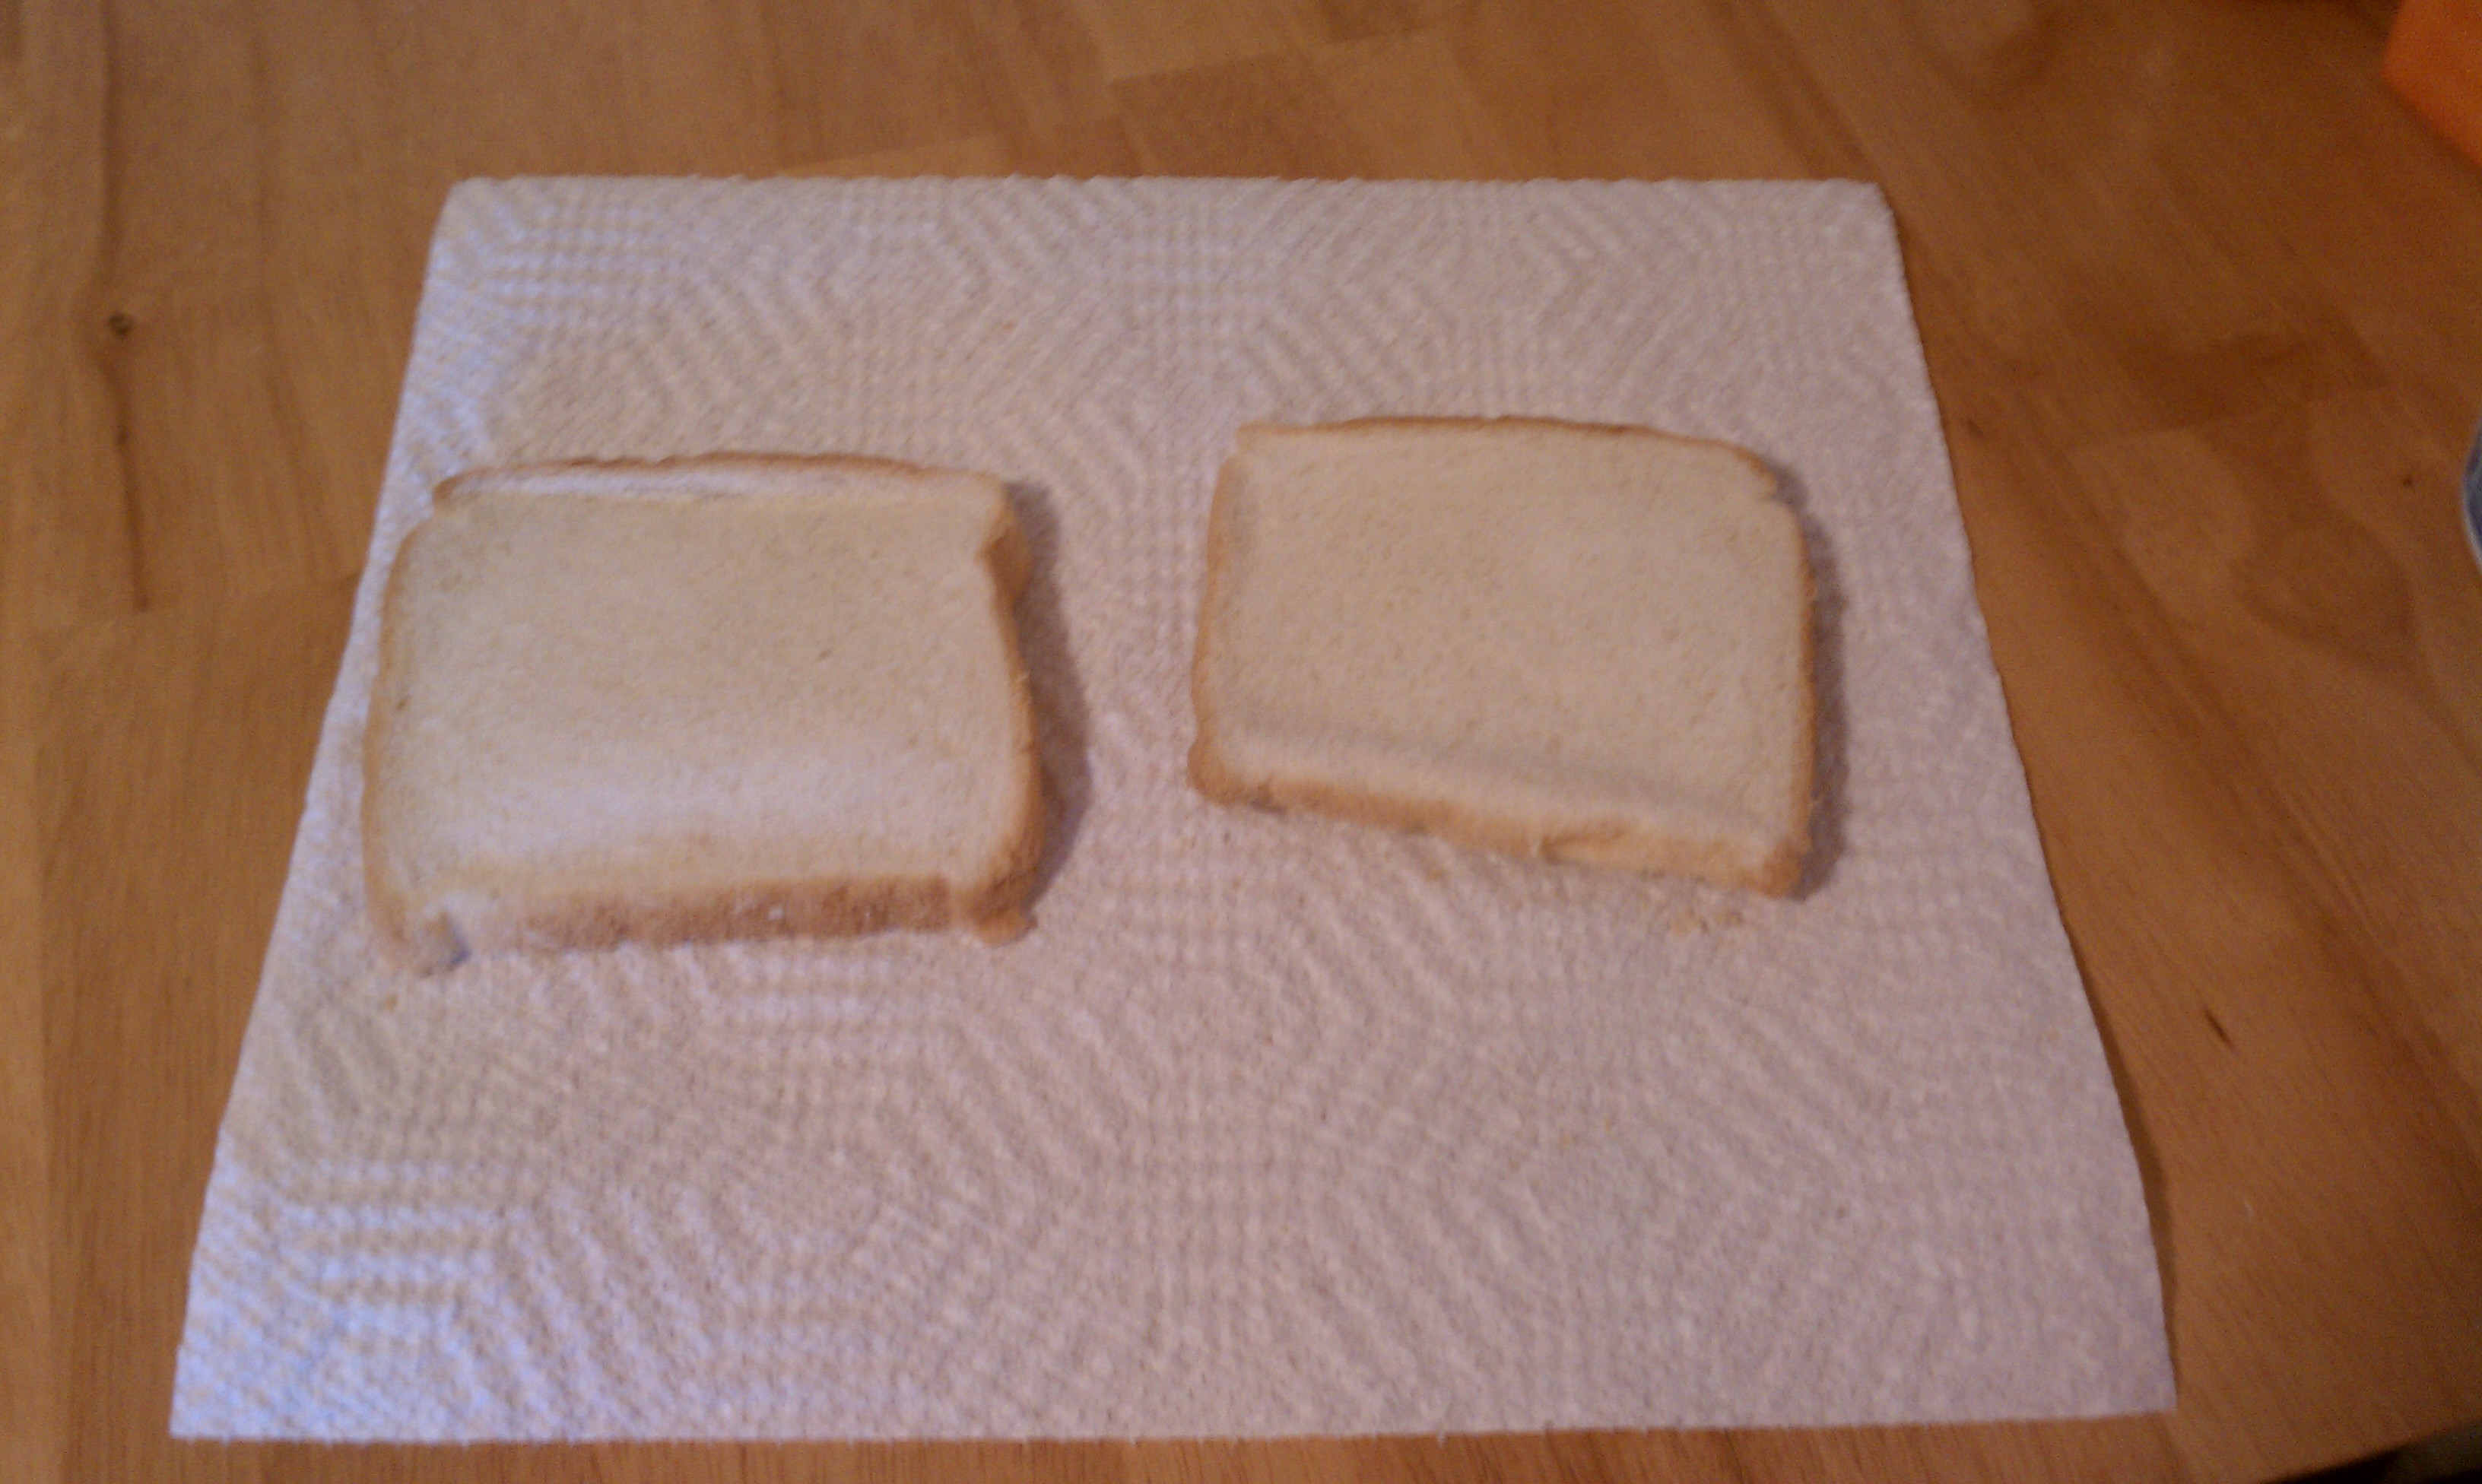 Picture of Place Two Pieces of Bread on a Flat Surface.